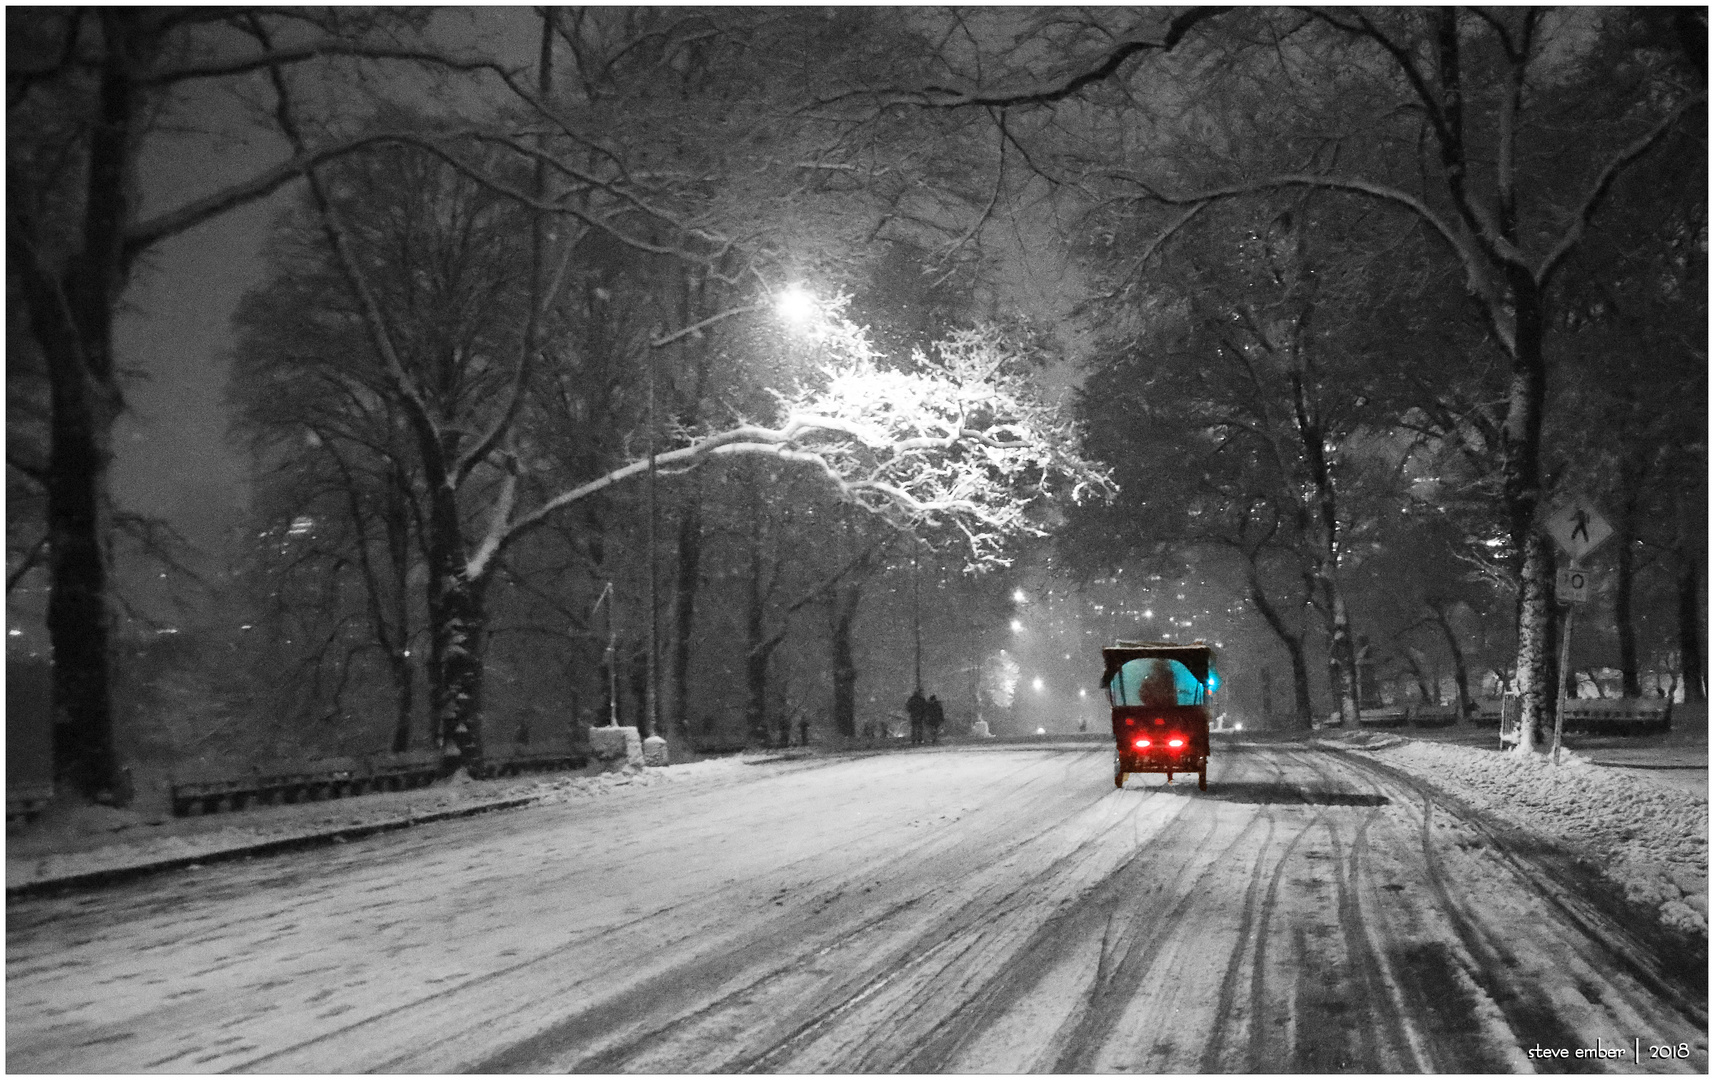 Winter Enchantment in Central Park